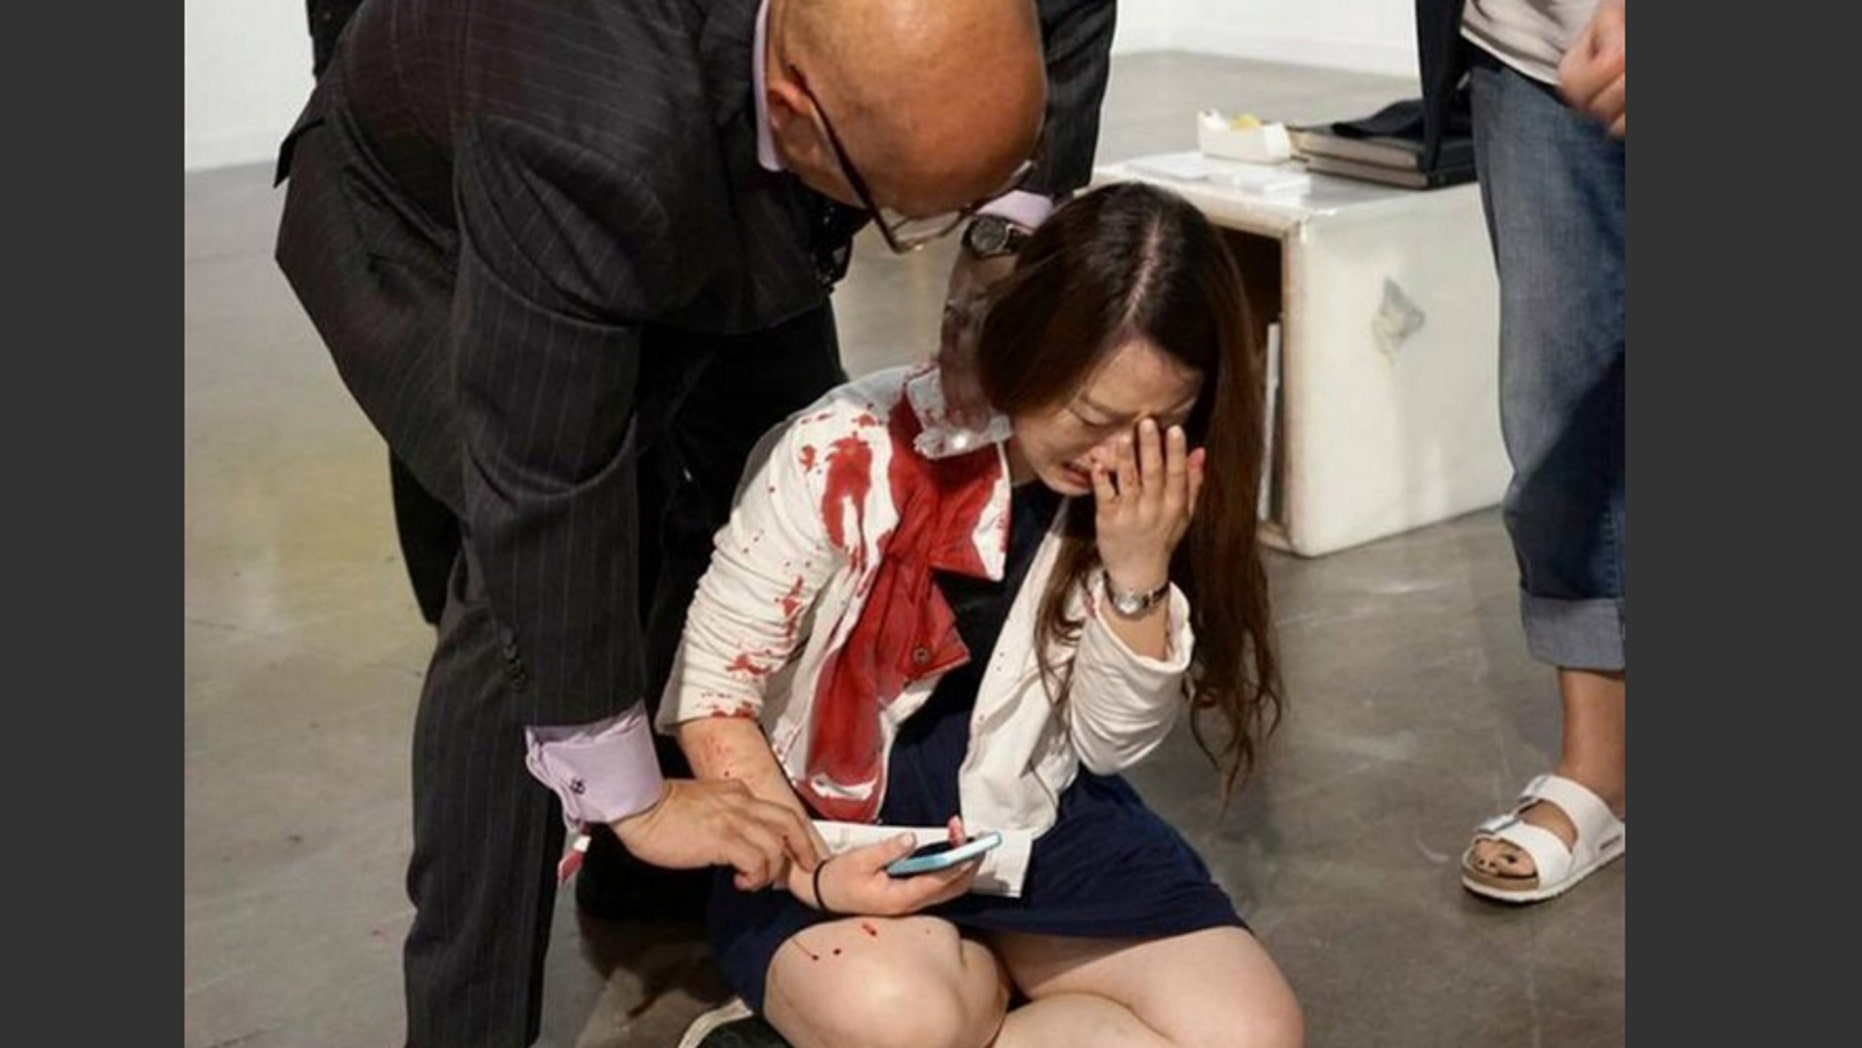 Dec 4. Woman stabbed at Art Basel show in Miami.